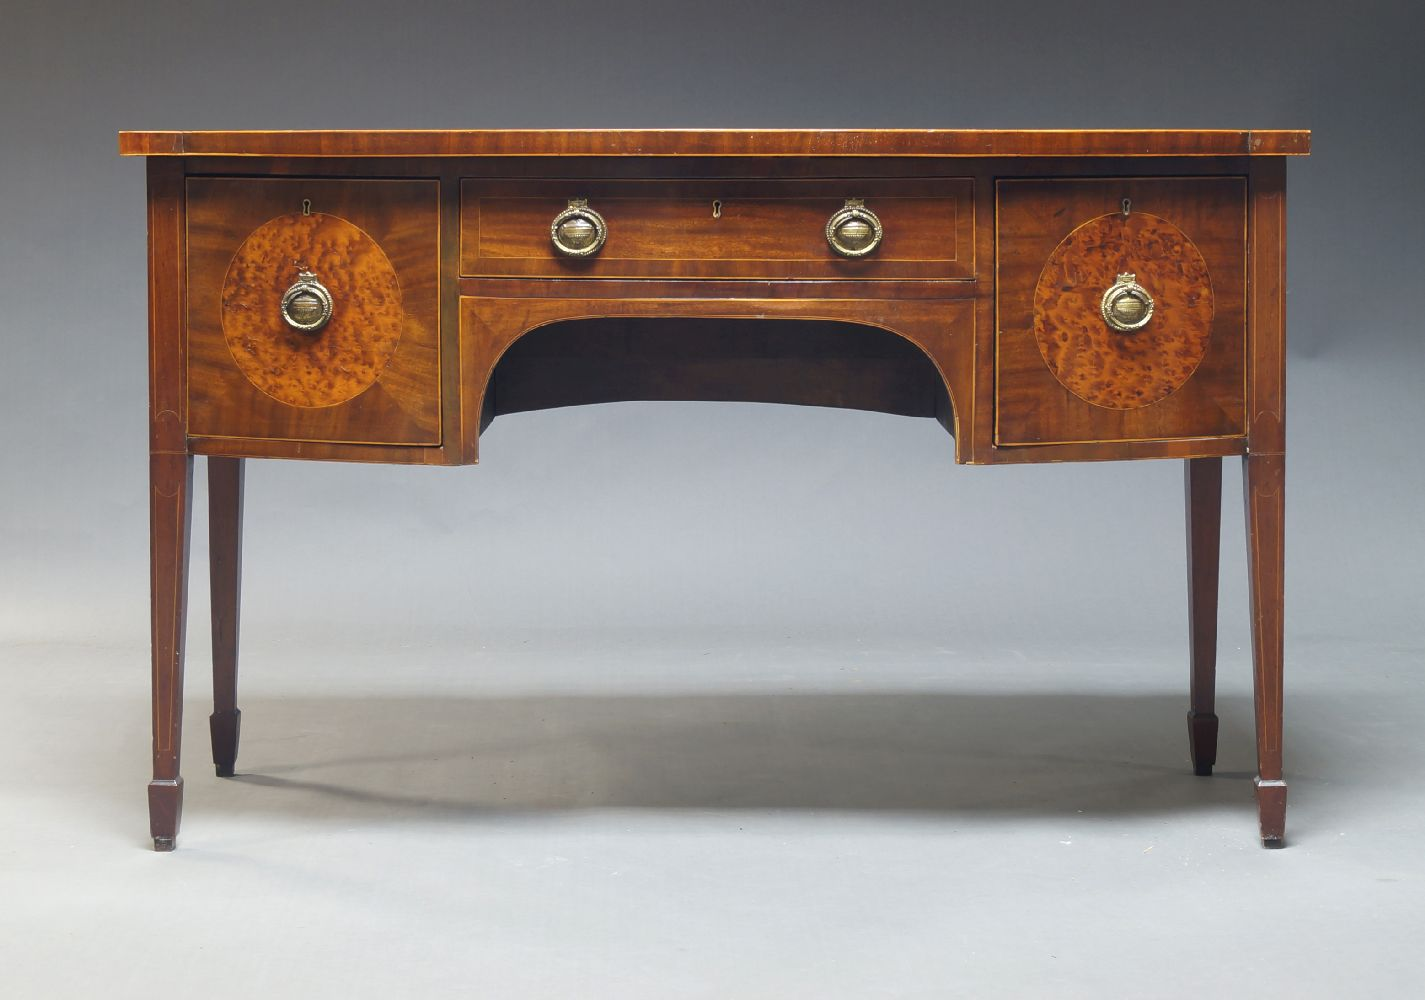 A Regency style mahogany and line strung sideboard, early 20th Century, with frieze drawer flanked